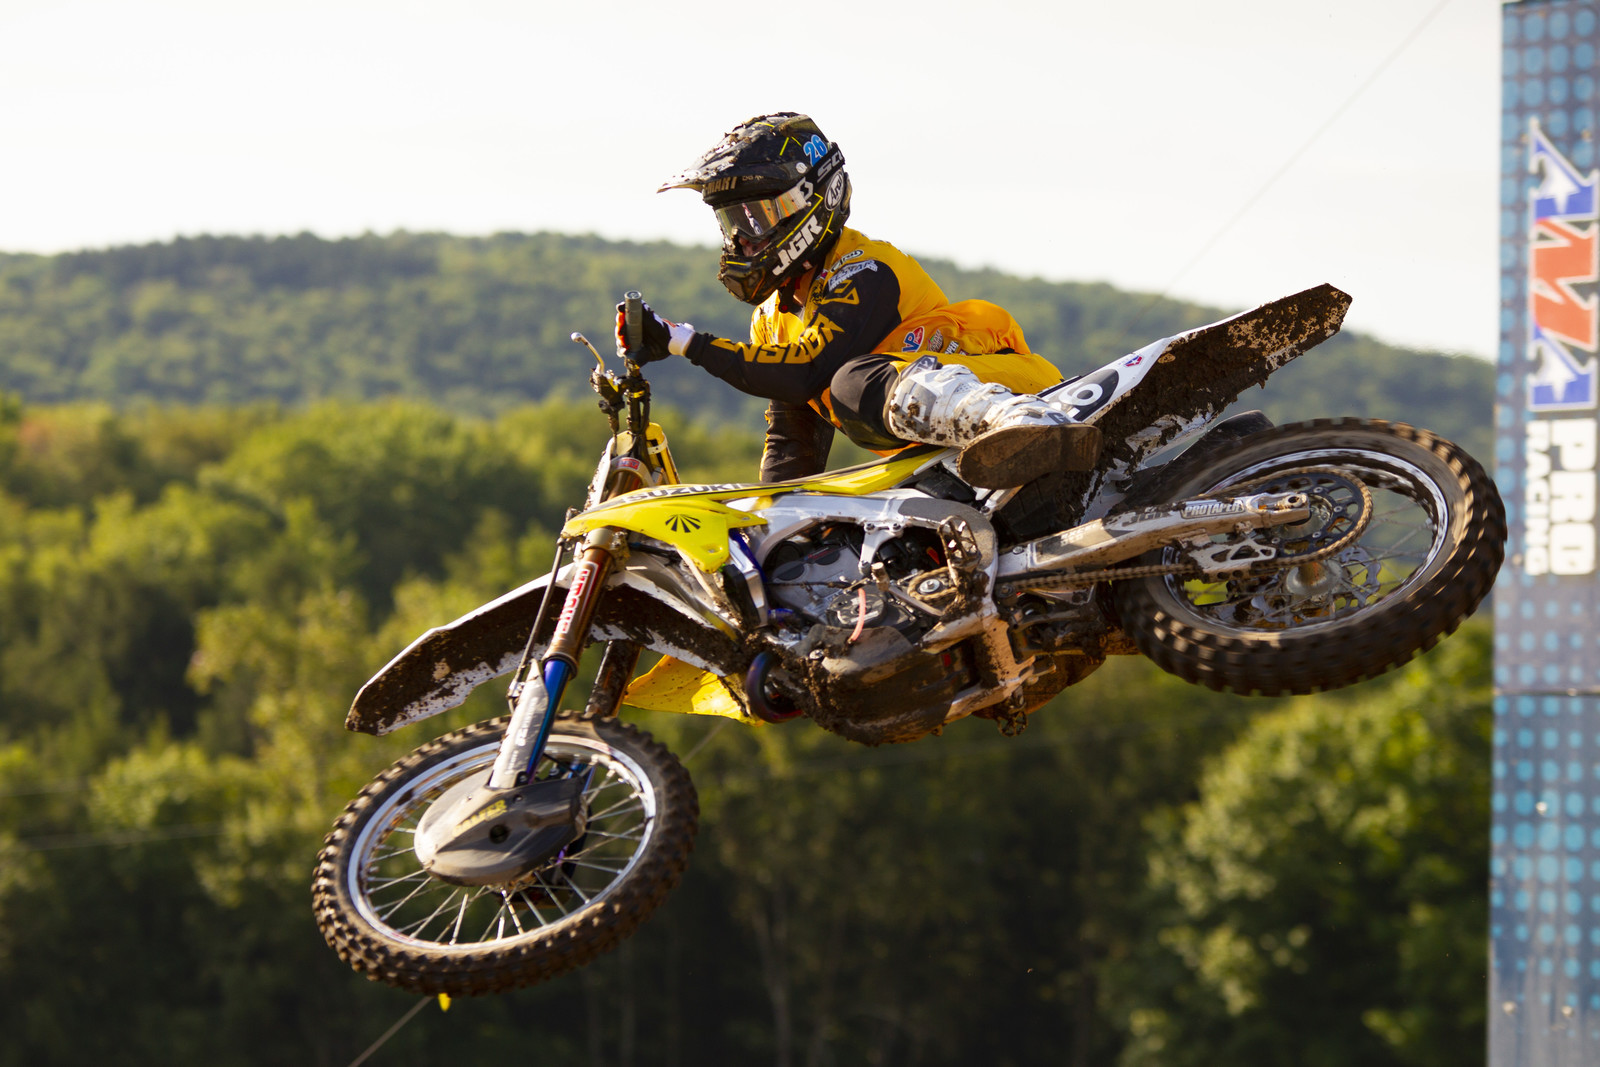 JGR / Yoshimura / Suzuki Factory Racing Announces Team Roster for 2020